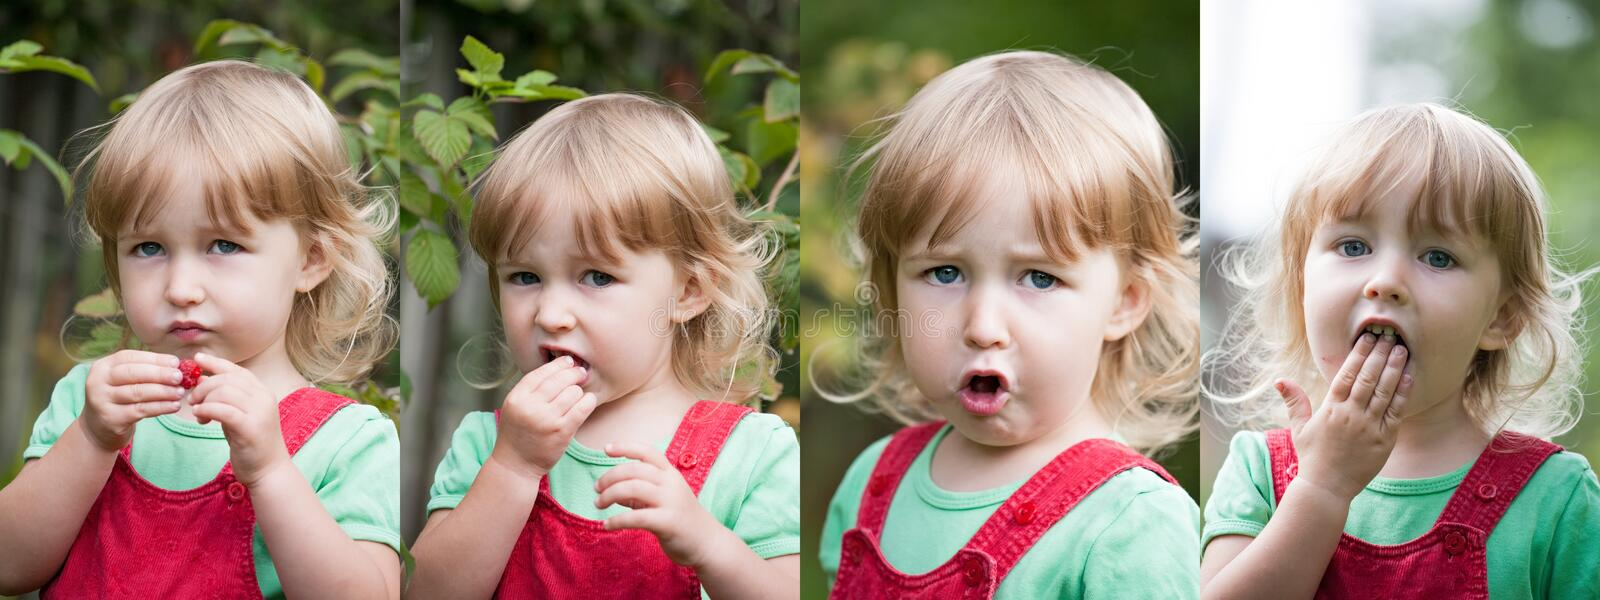 Collage of photos with  child girl chewing raspberry closeup face view royalty free stock photo